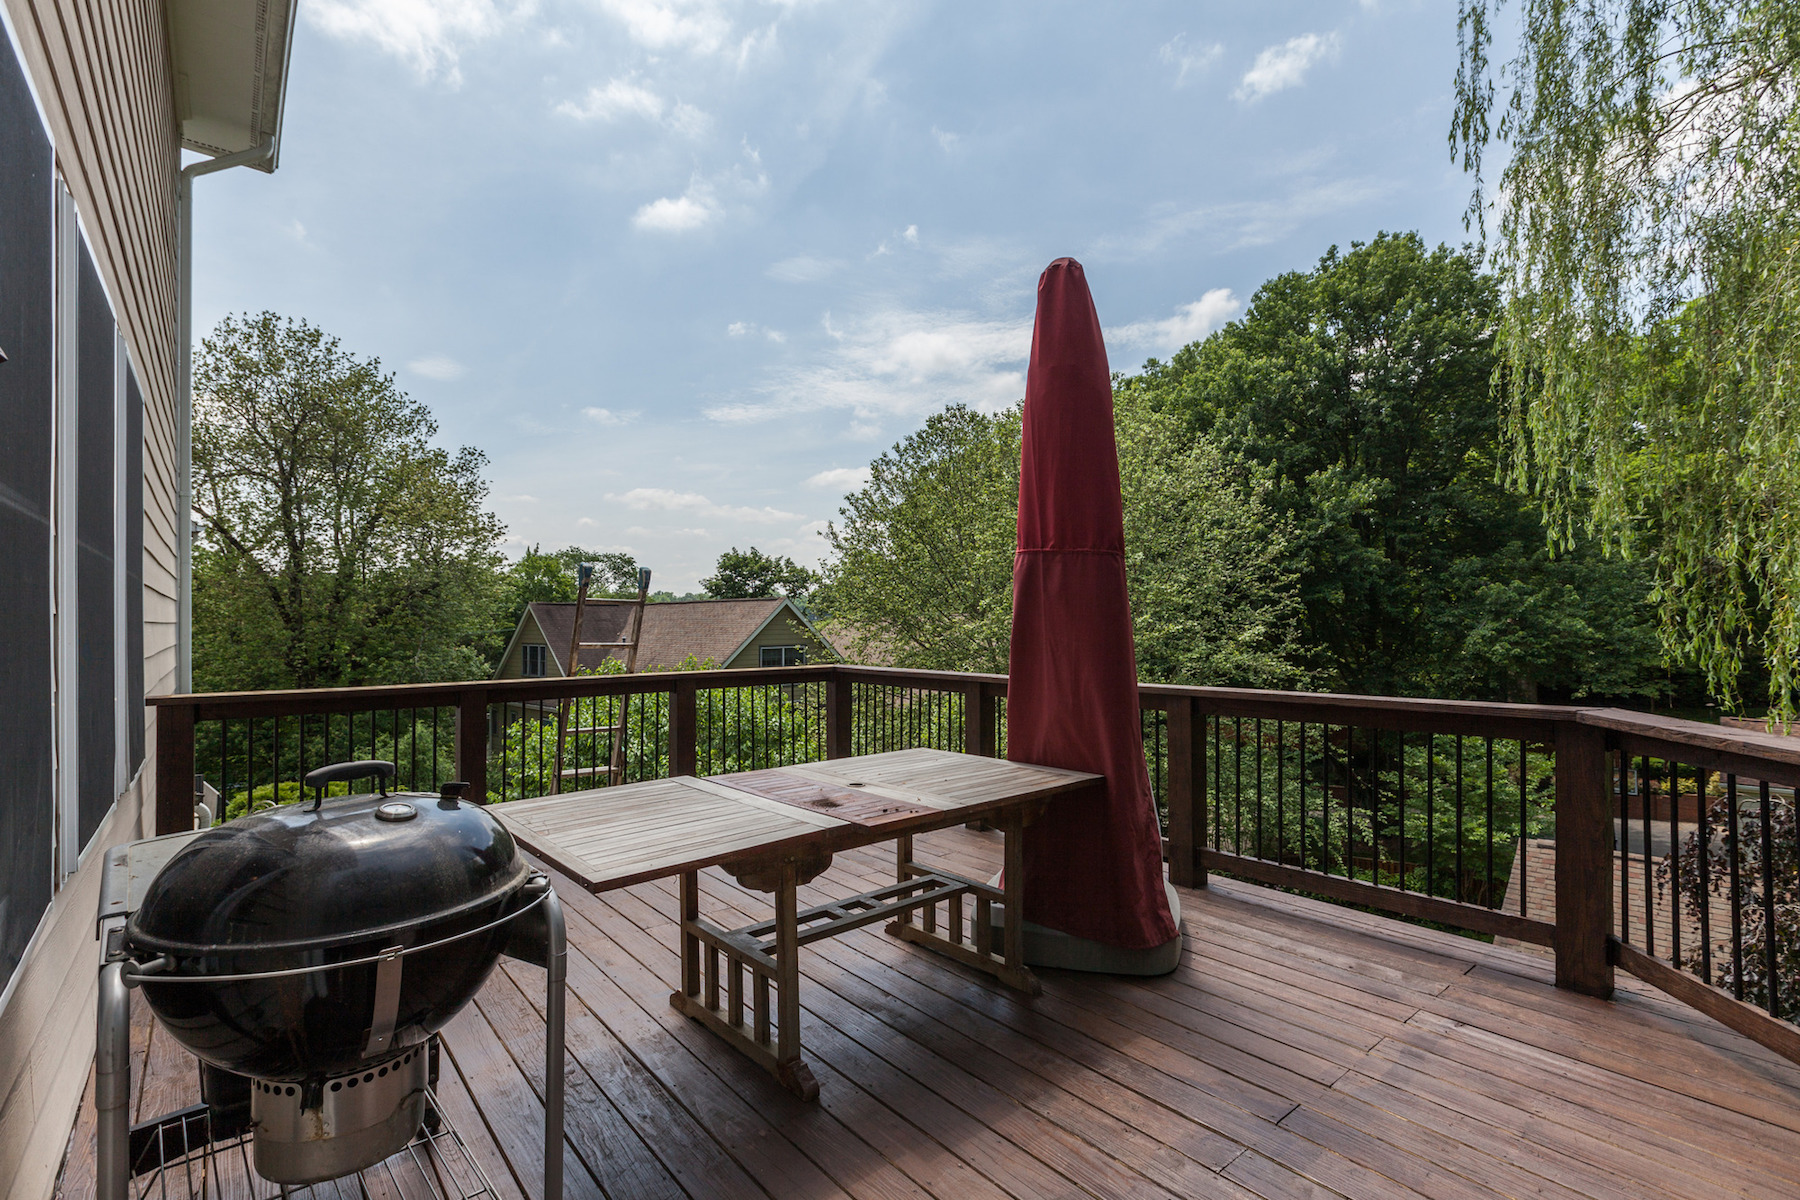 Additional photo for property listing at 6409 Macarthur Boulevard, Bethesda 6409 Macarthur Blvd Bethesda, Maryland 20816 Estados Unidos